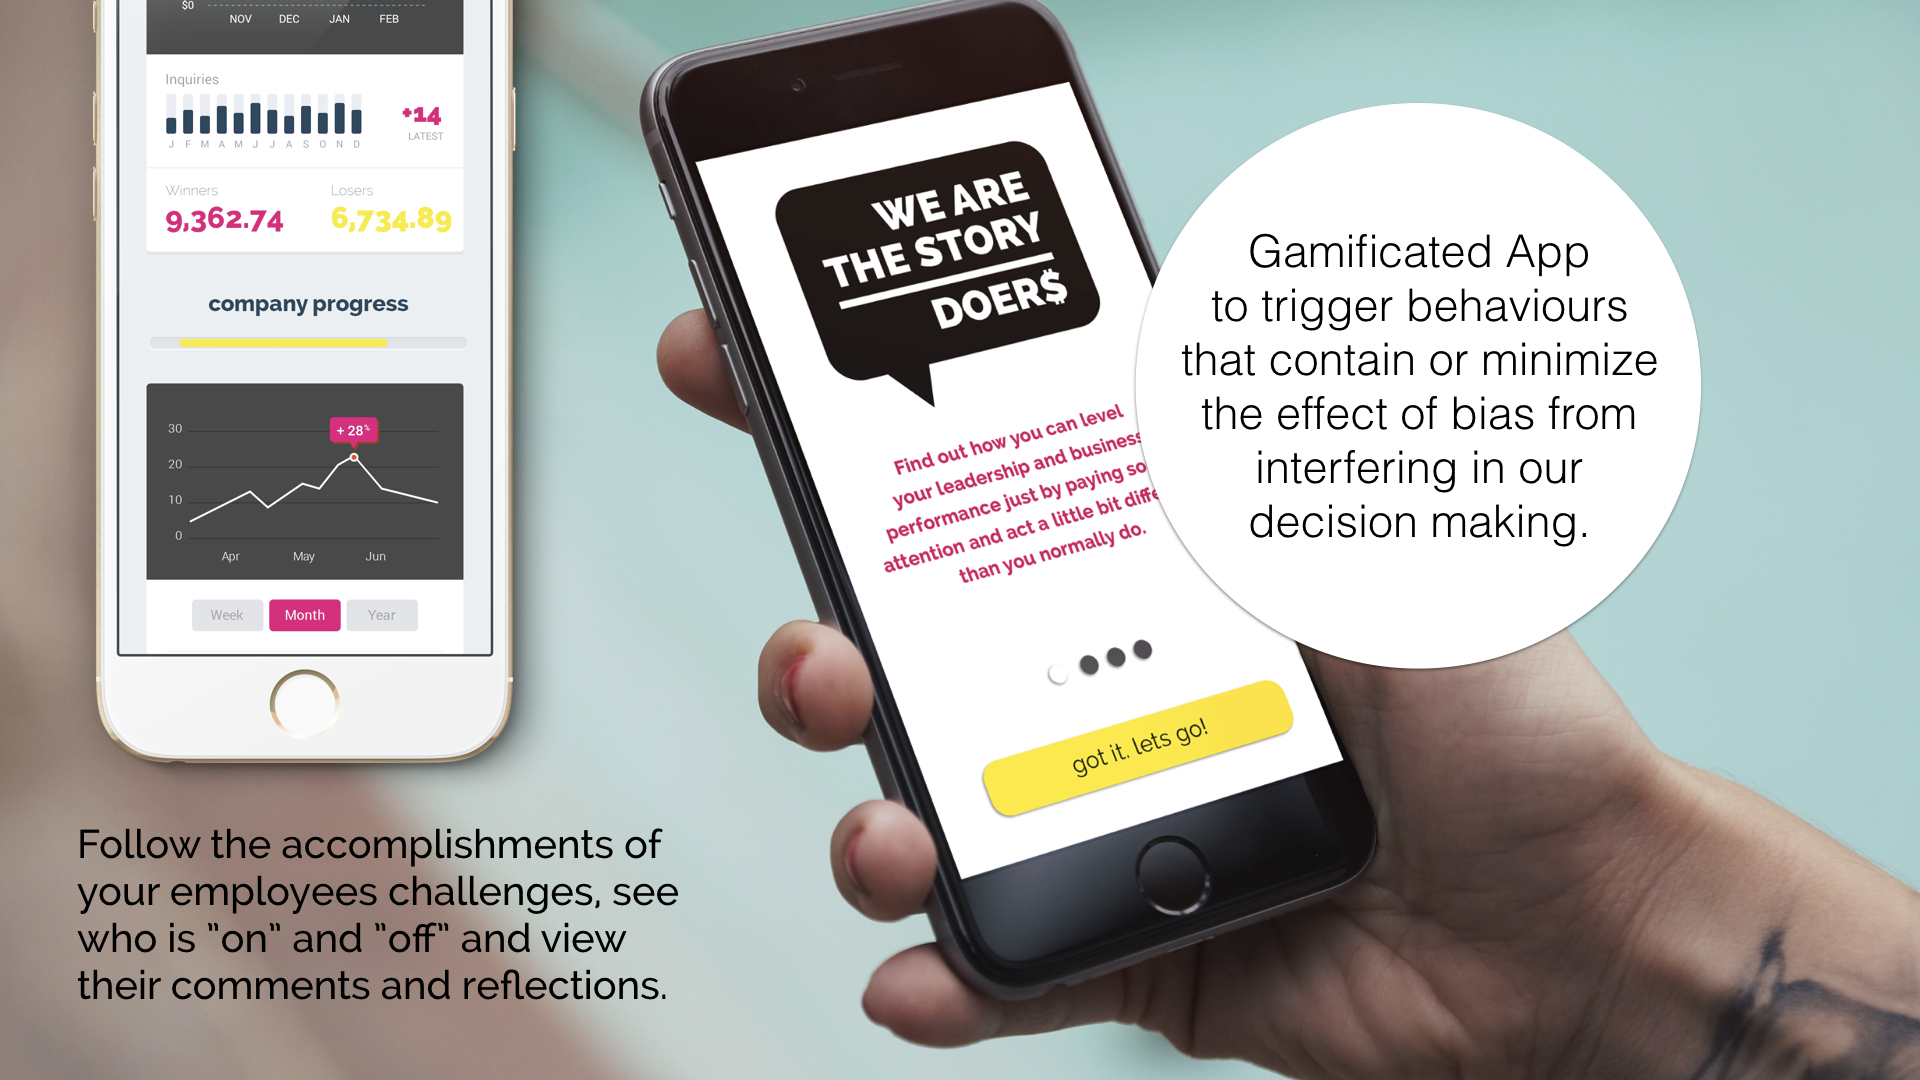 Gamificated App to trigger behaviours that contain or minimize the effect of bias from interfering our decision making.